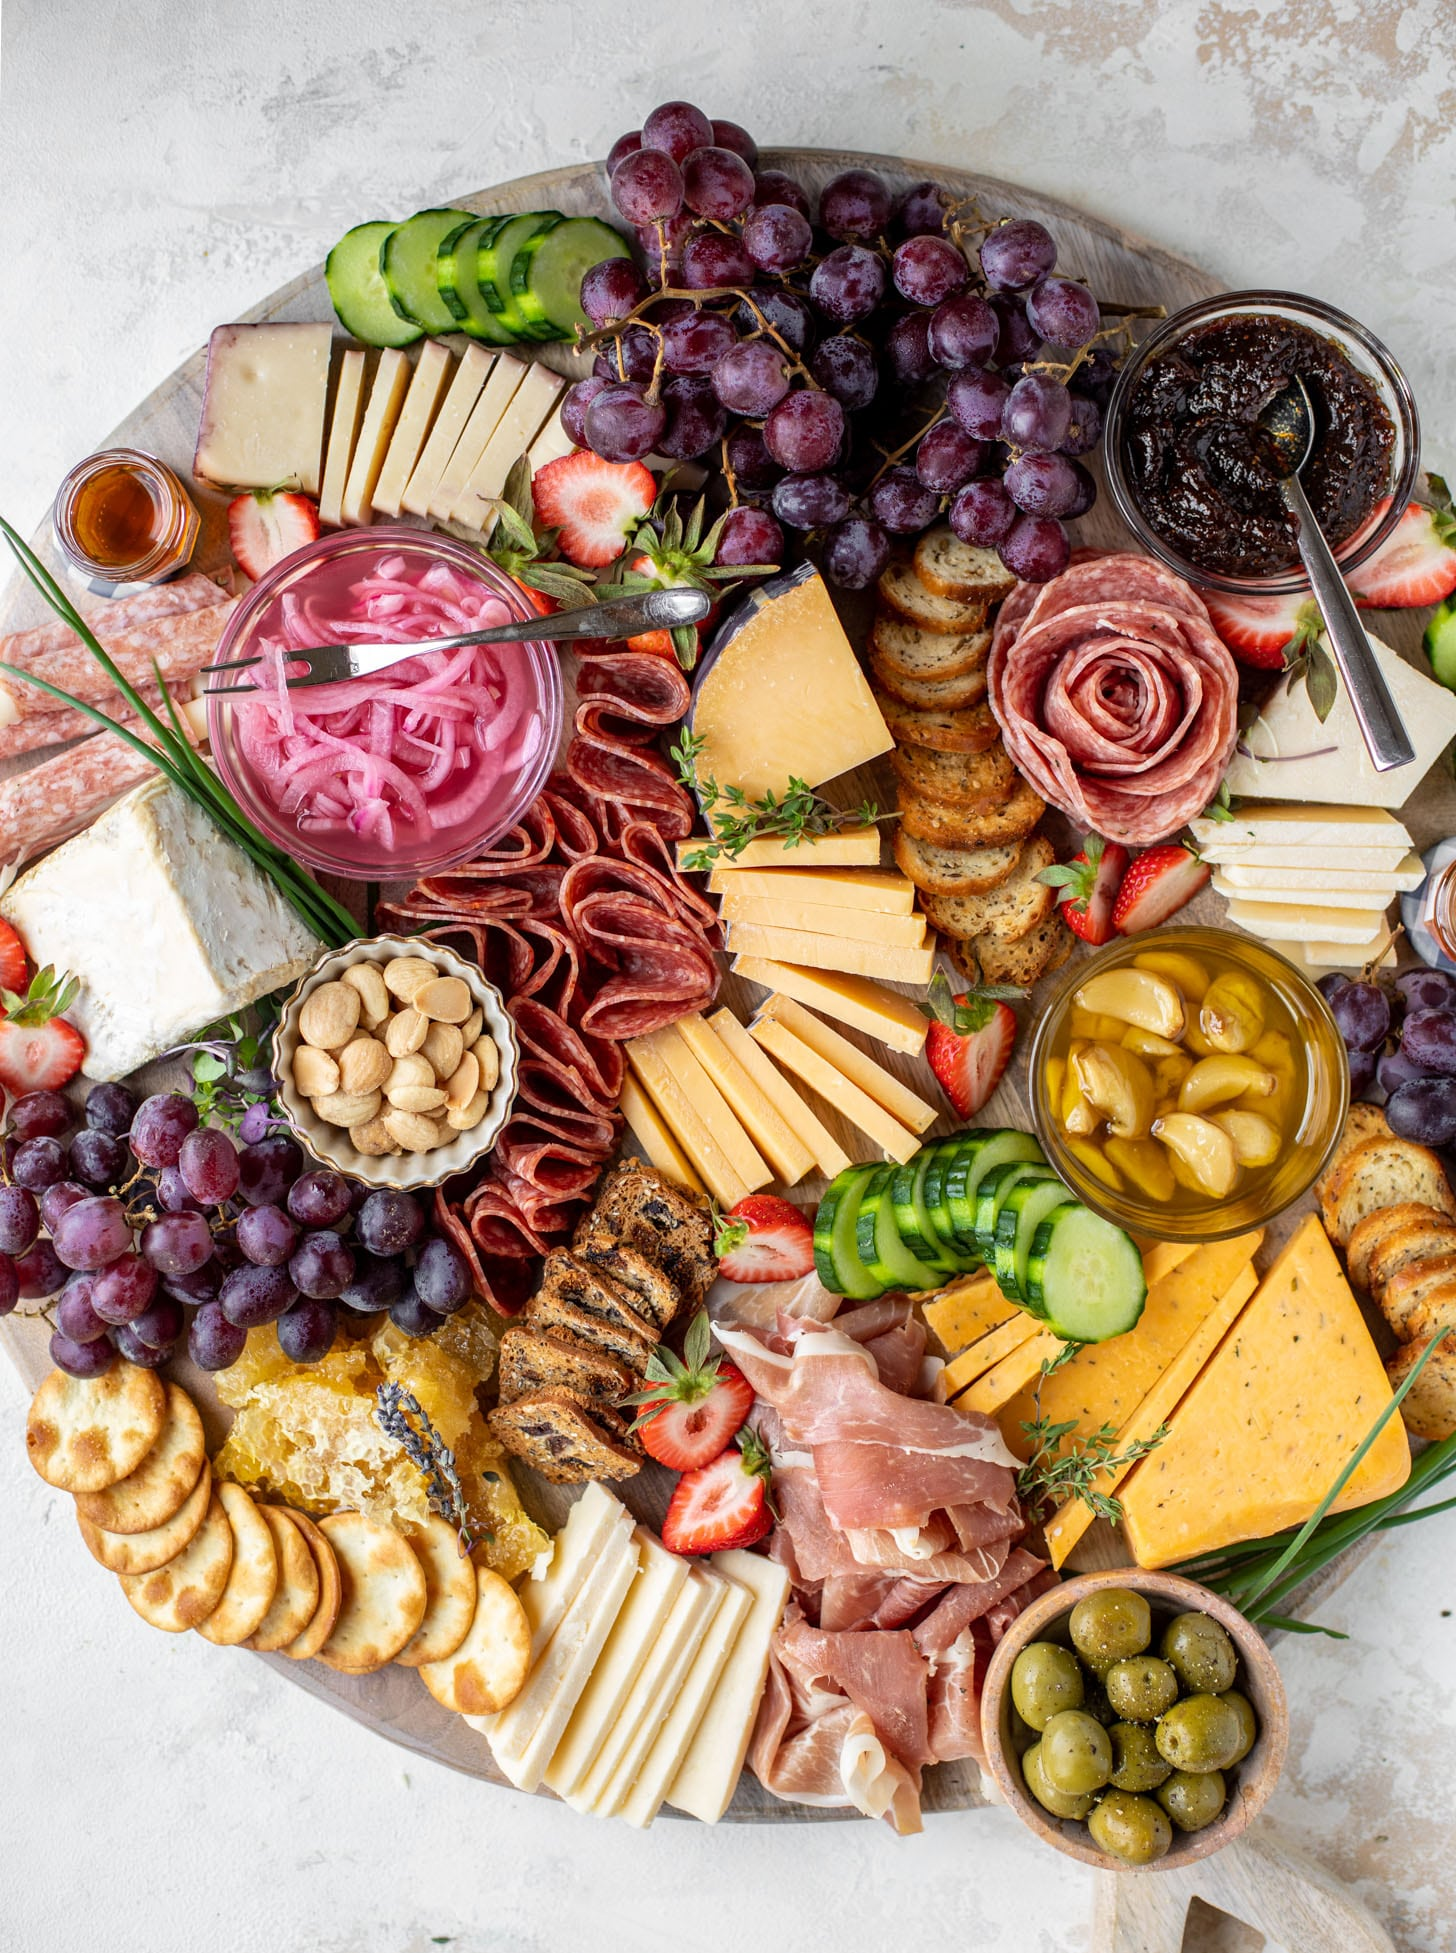 the exact cheese to buy for cheese boards